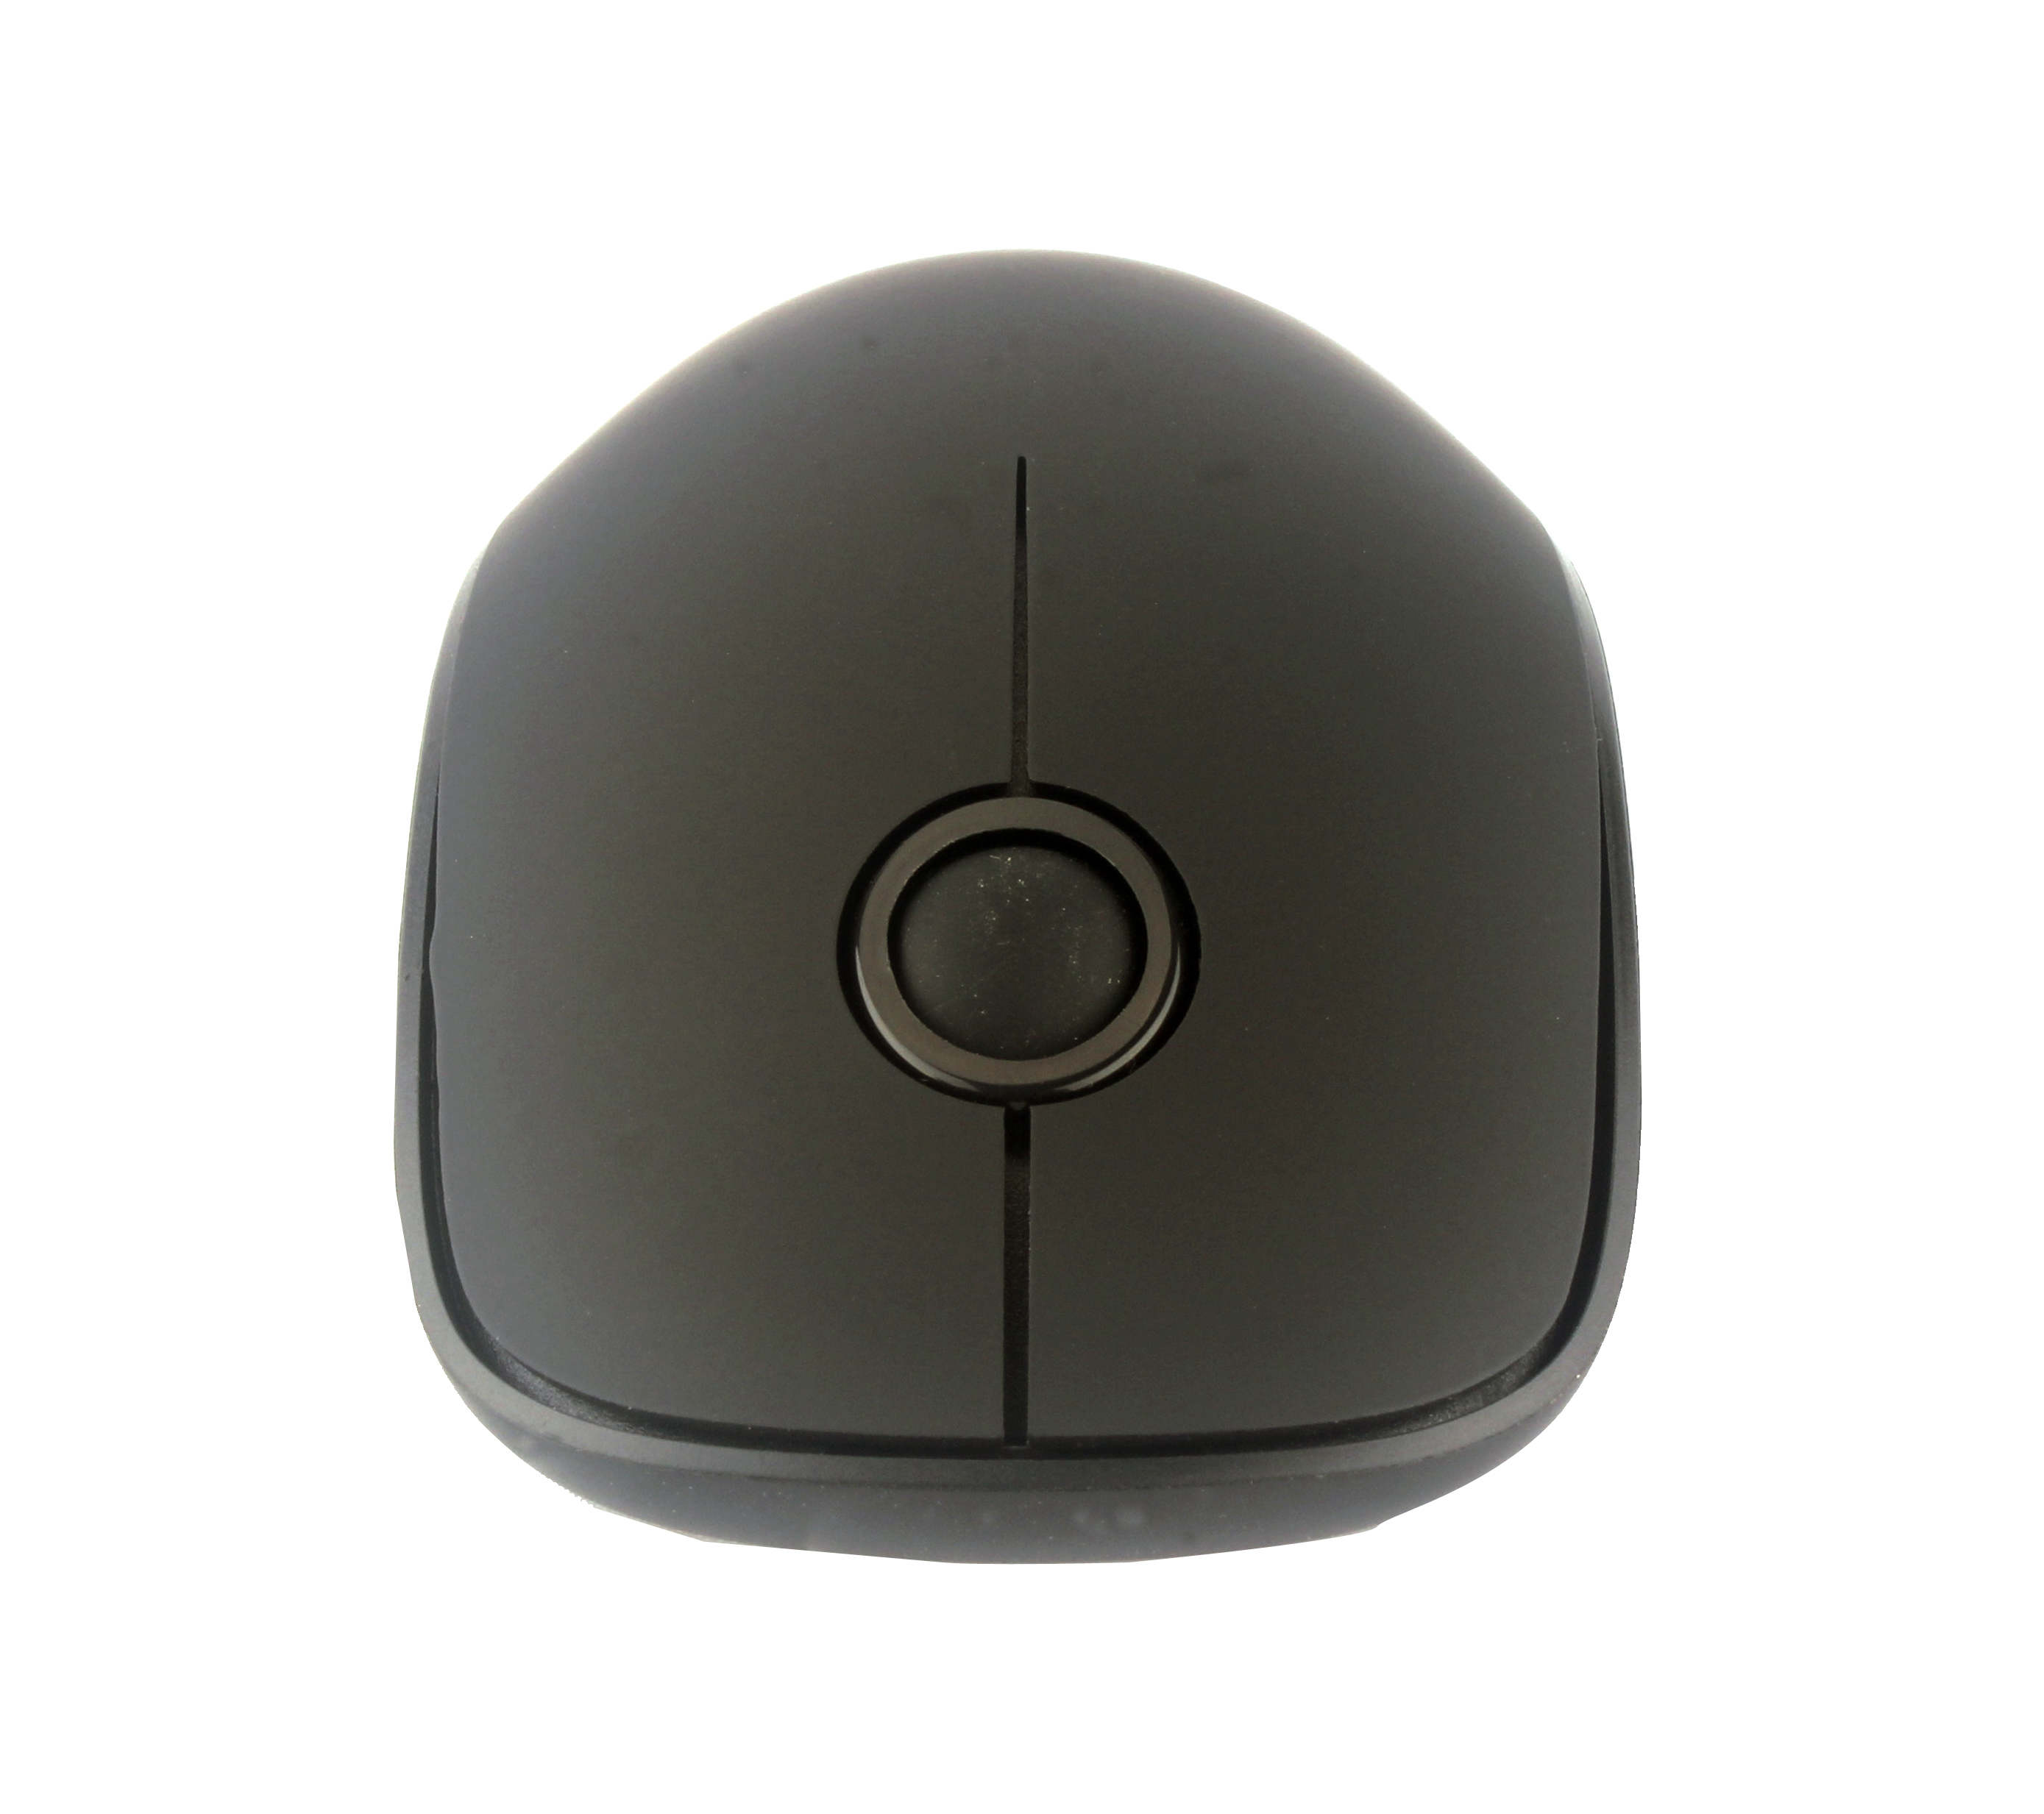 Silent Office Mouse, No Making Noise,Rubber Oil Finished For Smooth Touch